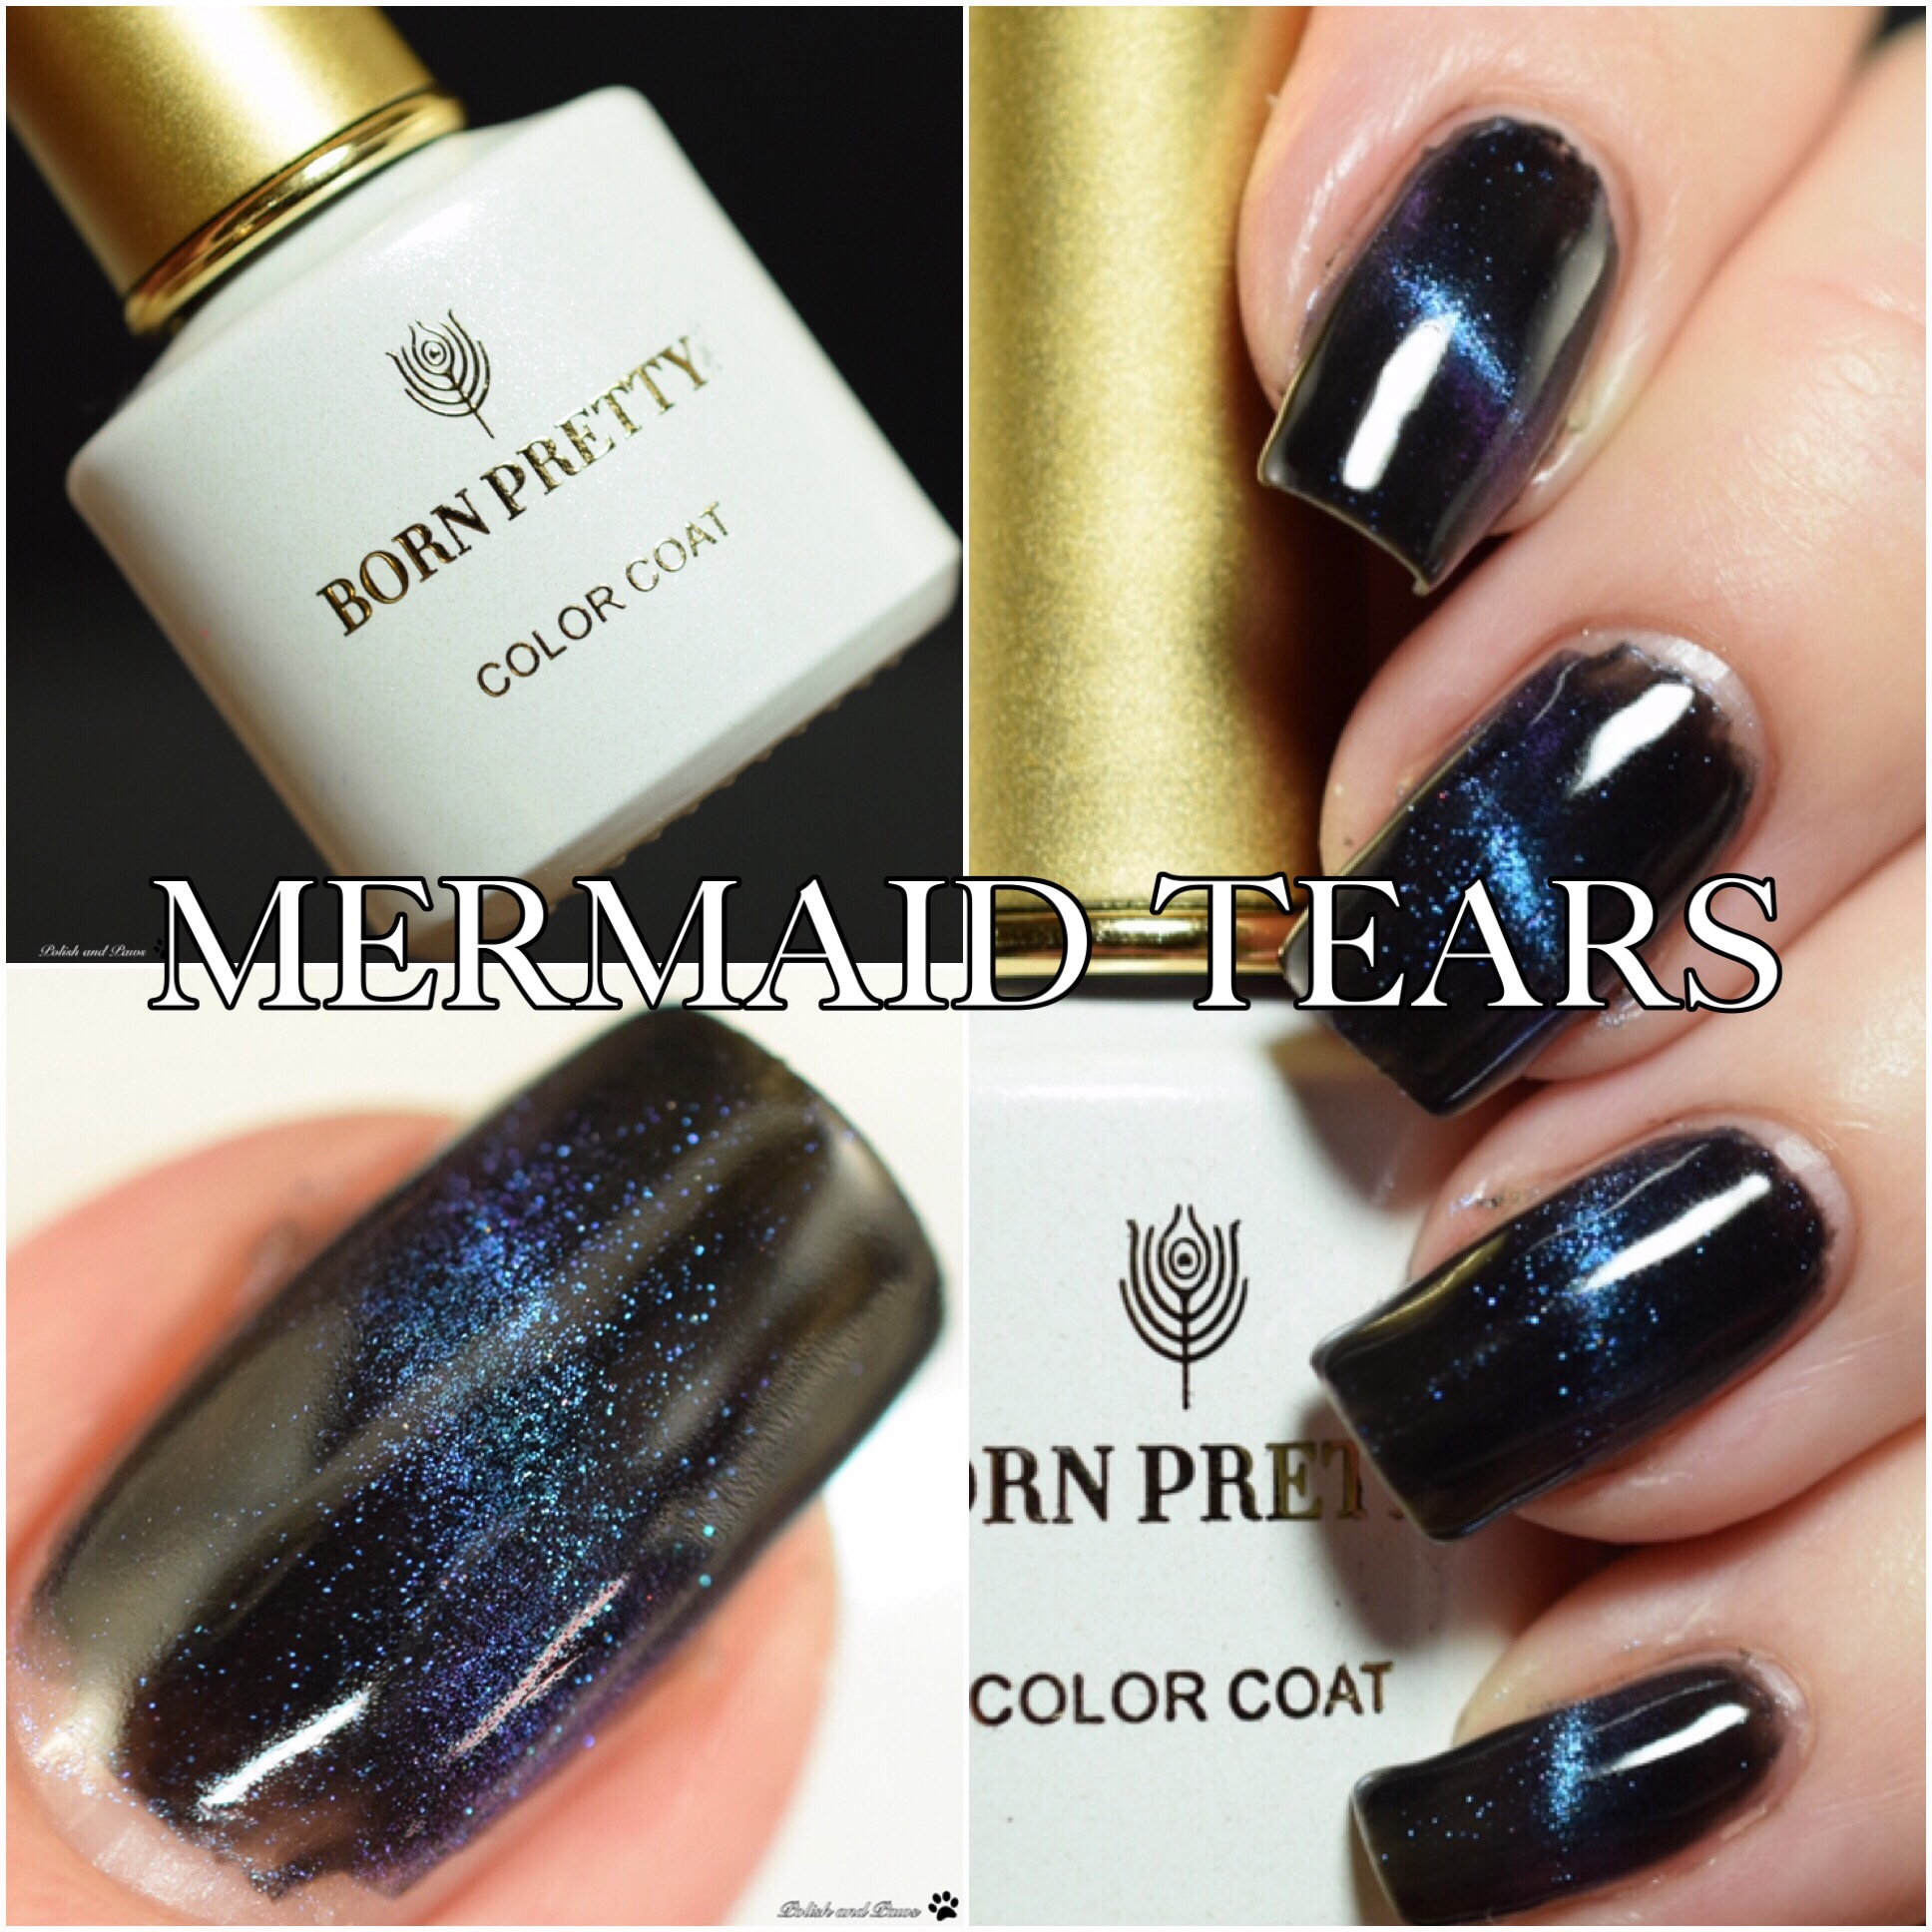 Born Pretty Store Mermaid Tears Magnetic Gel